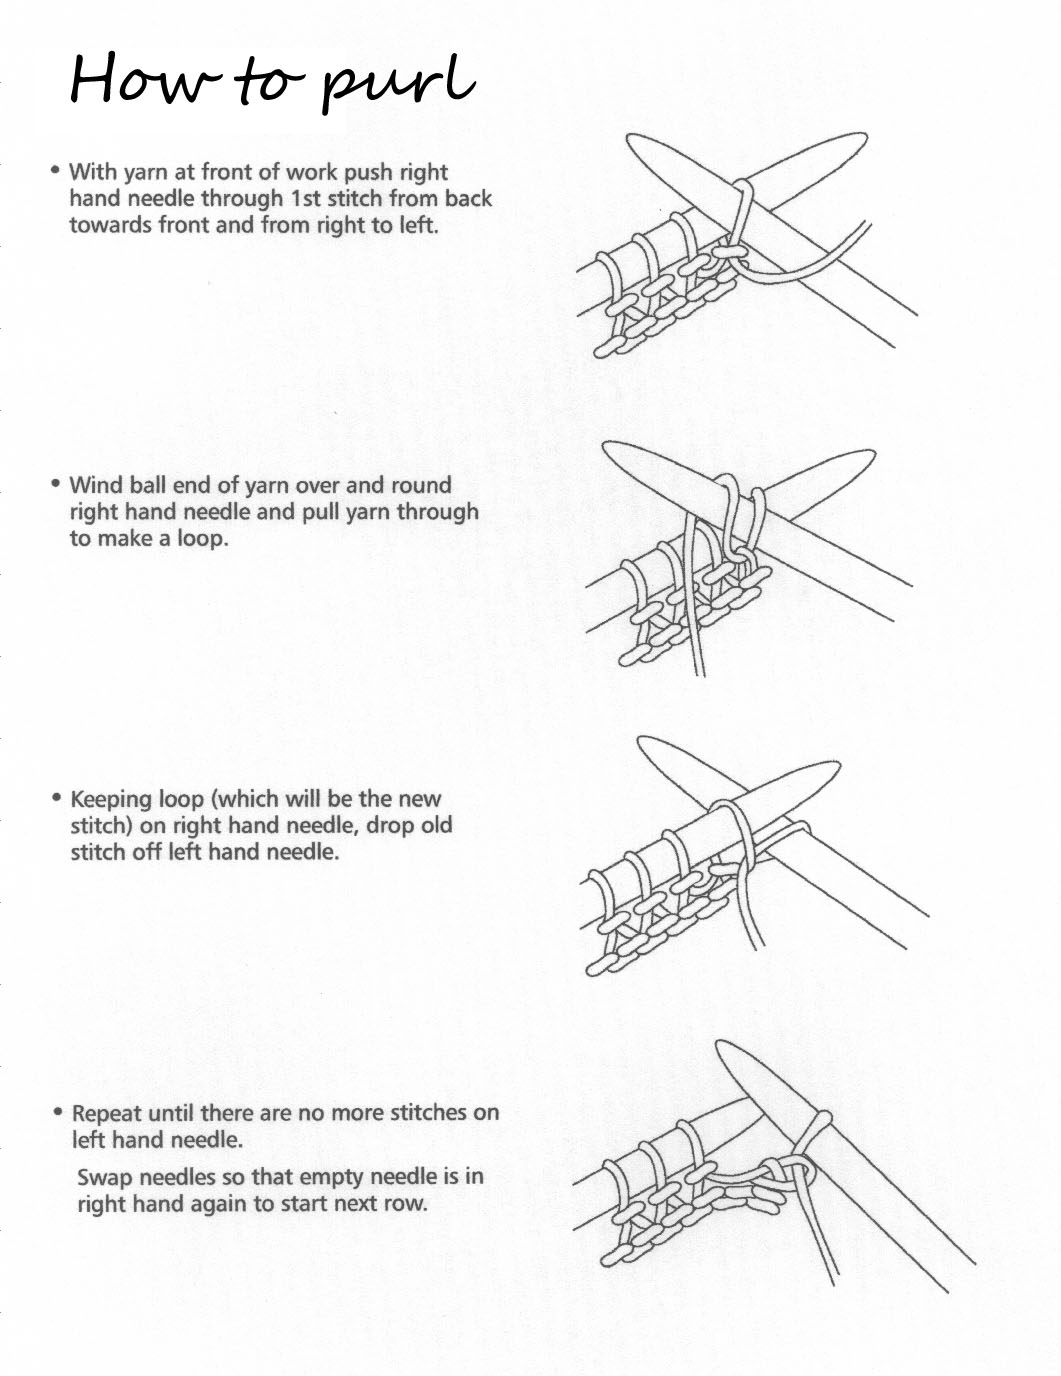 How To Purl Stitches In Knitting : HOW TO KNIT.